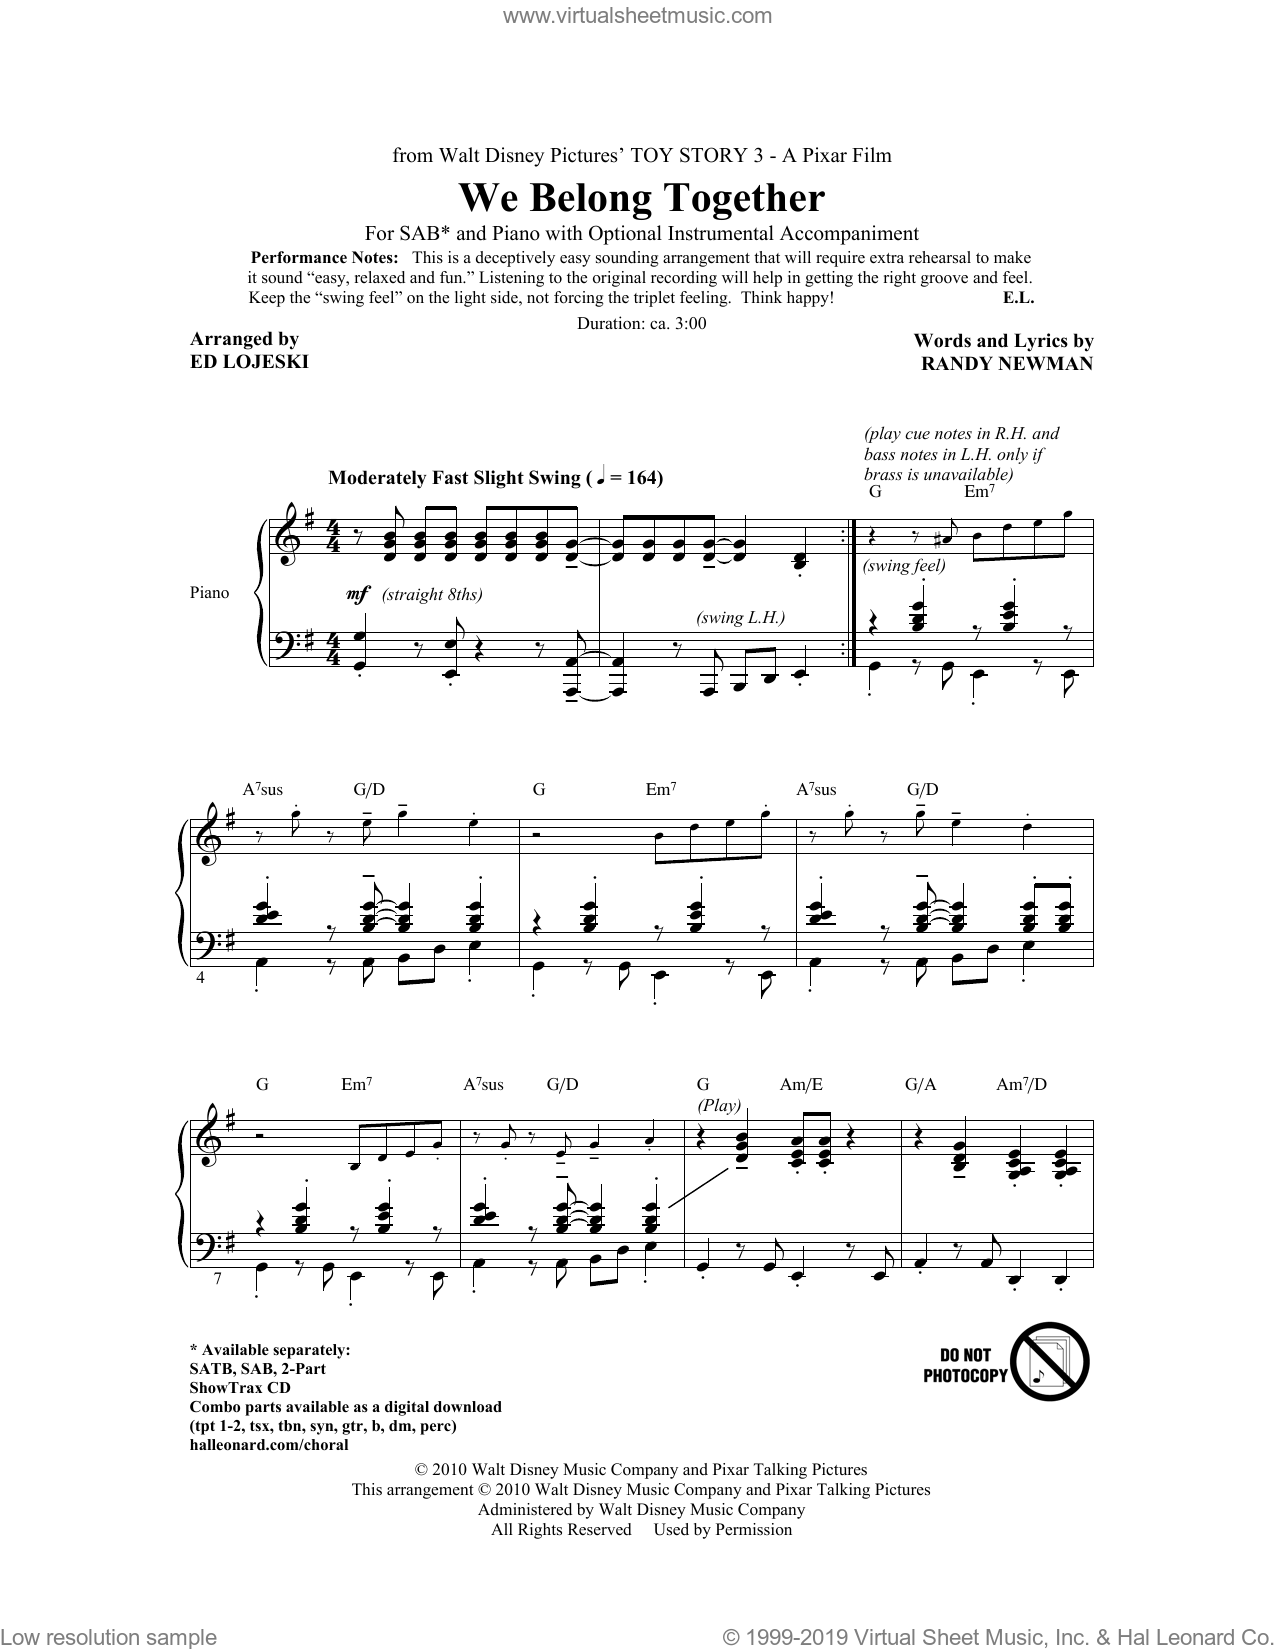 We Belong Together (from Toy Story 3) sheet music for choir and piano (SAB) by Ed Lojeski